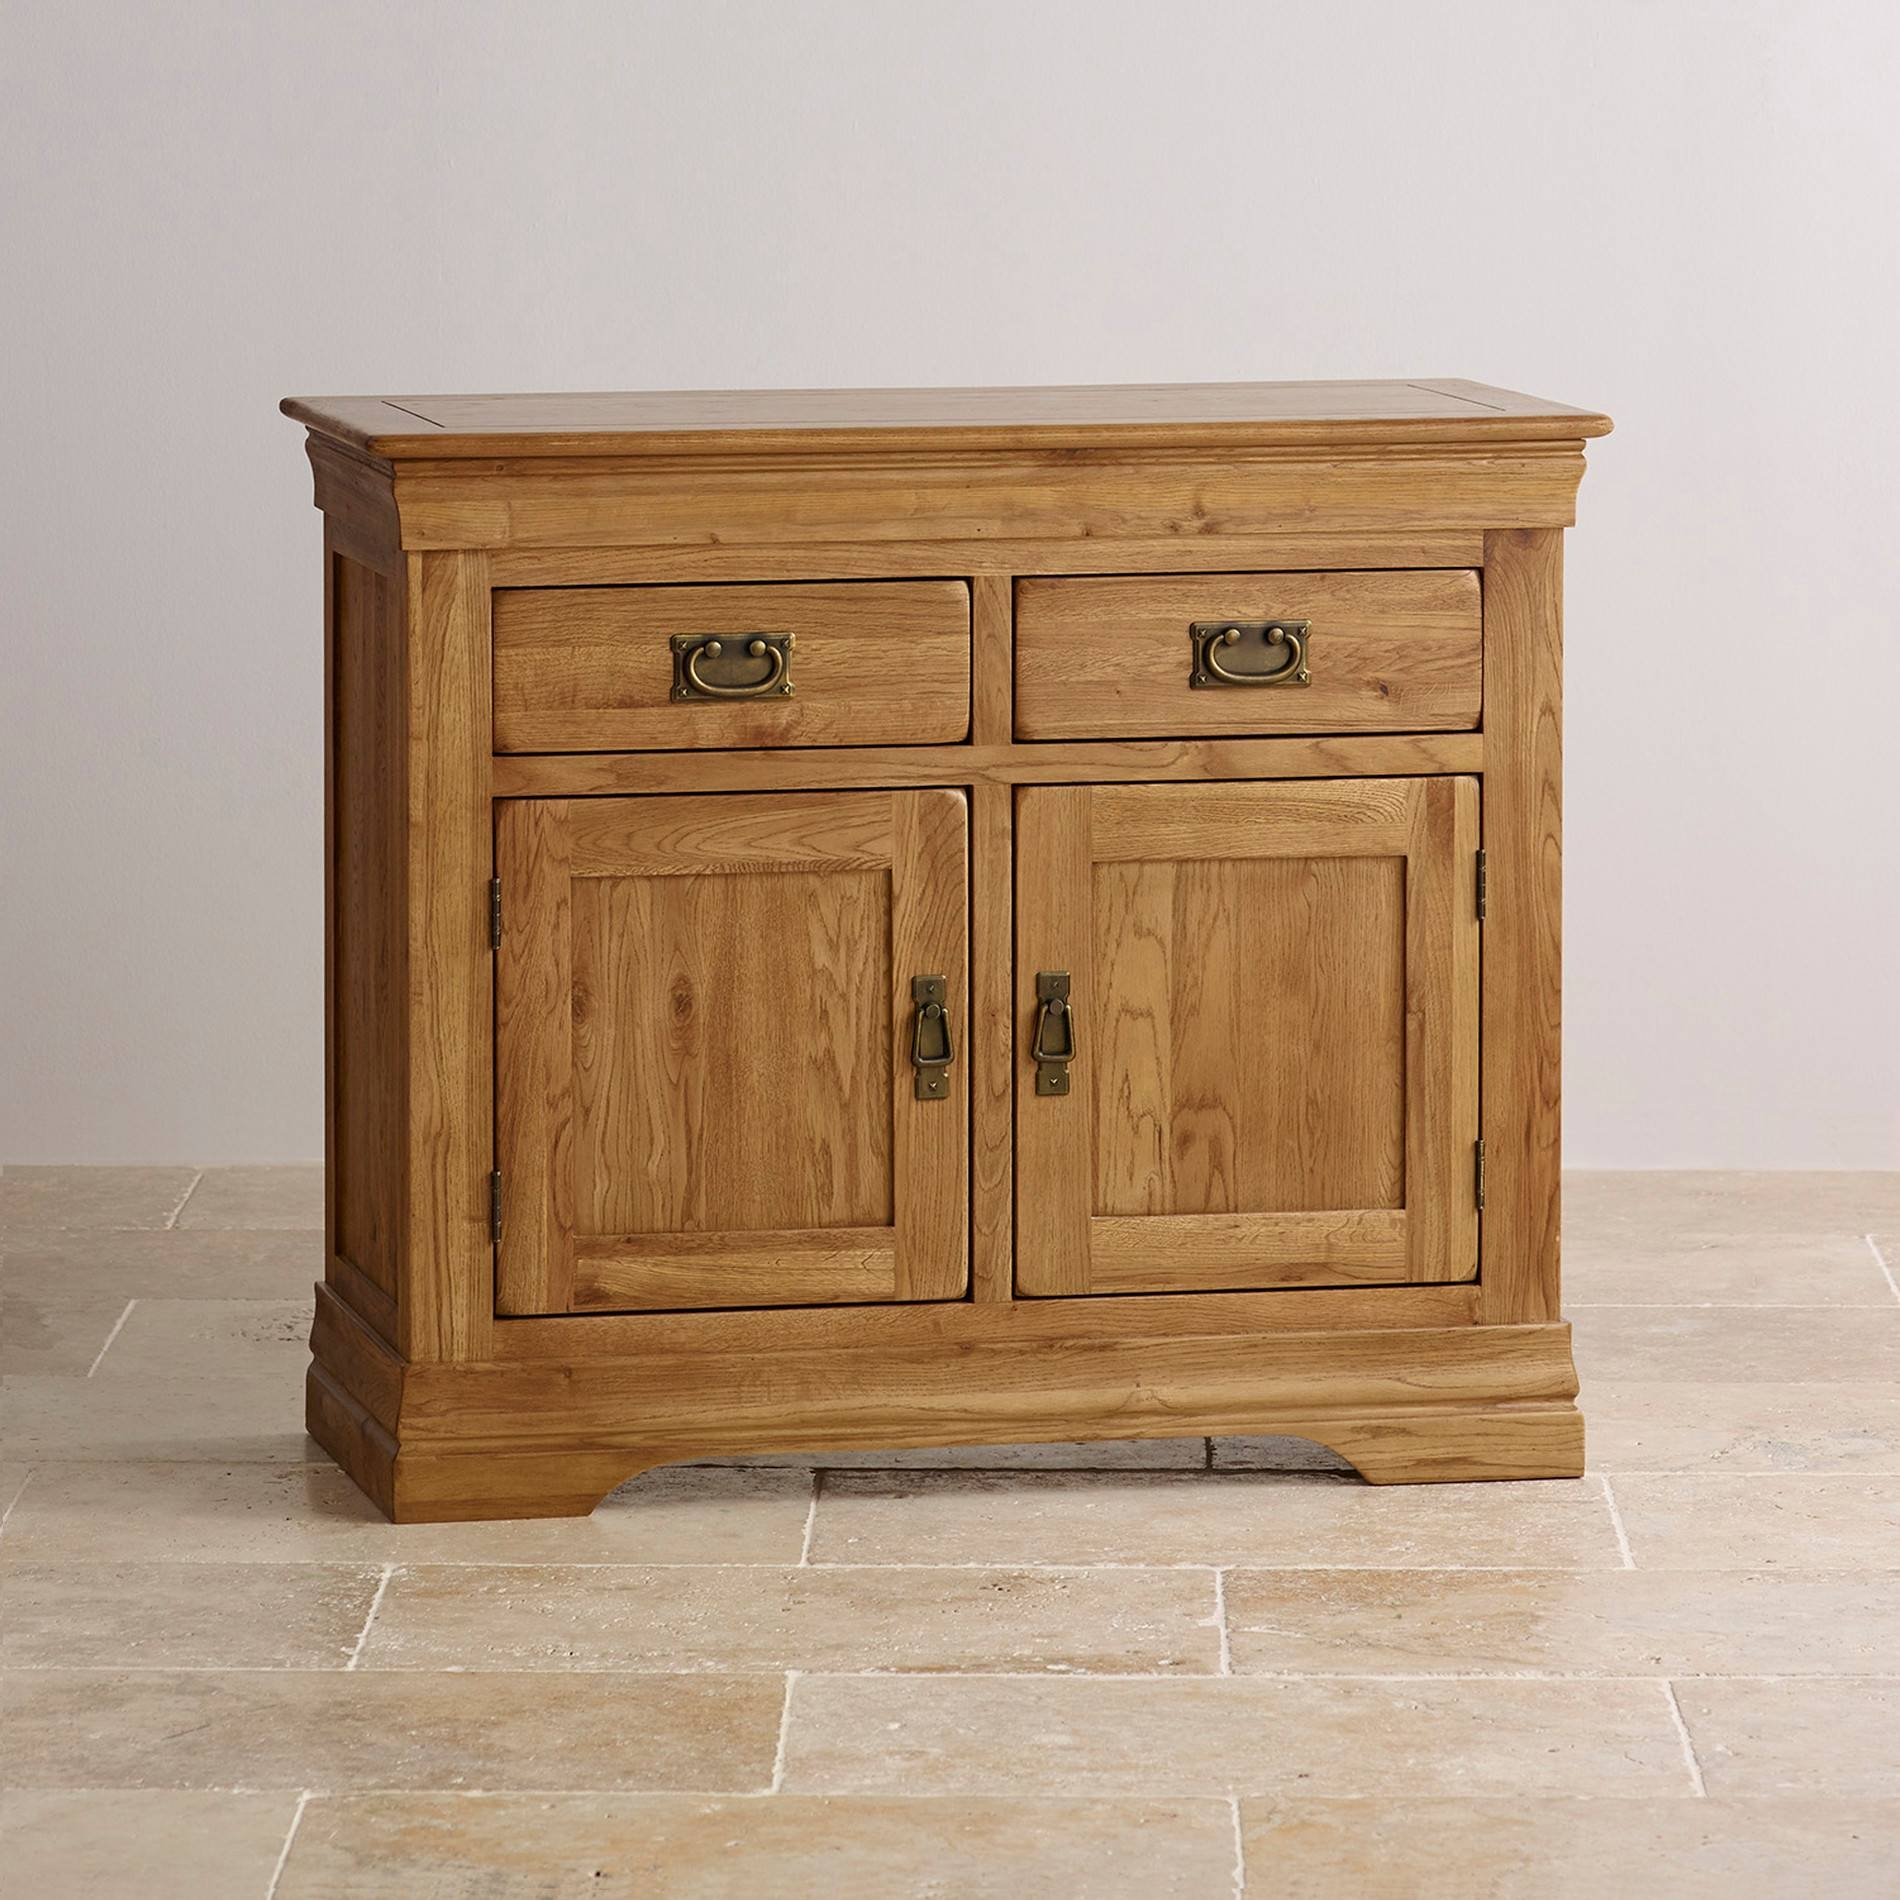 French Farmhouse Small Sideboard In Solid Oak intended for Light Oak Sideboards (Image 6 of 30)